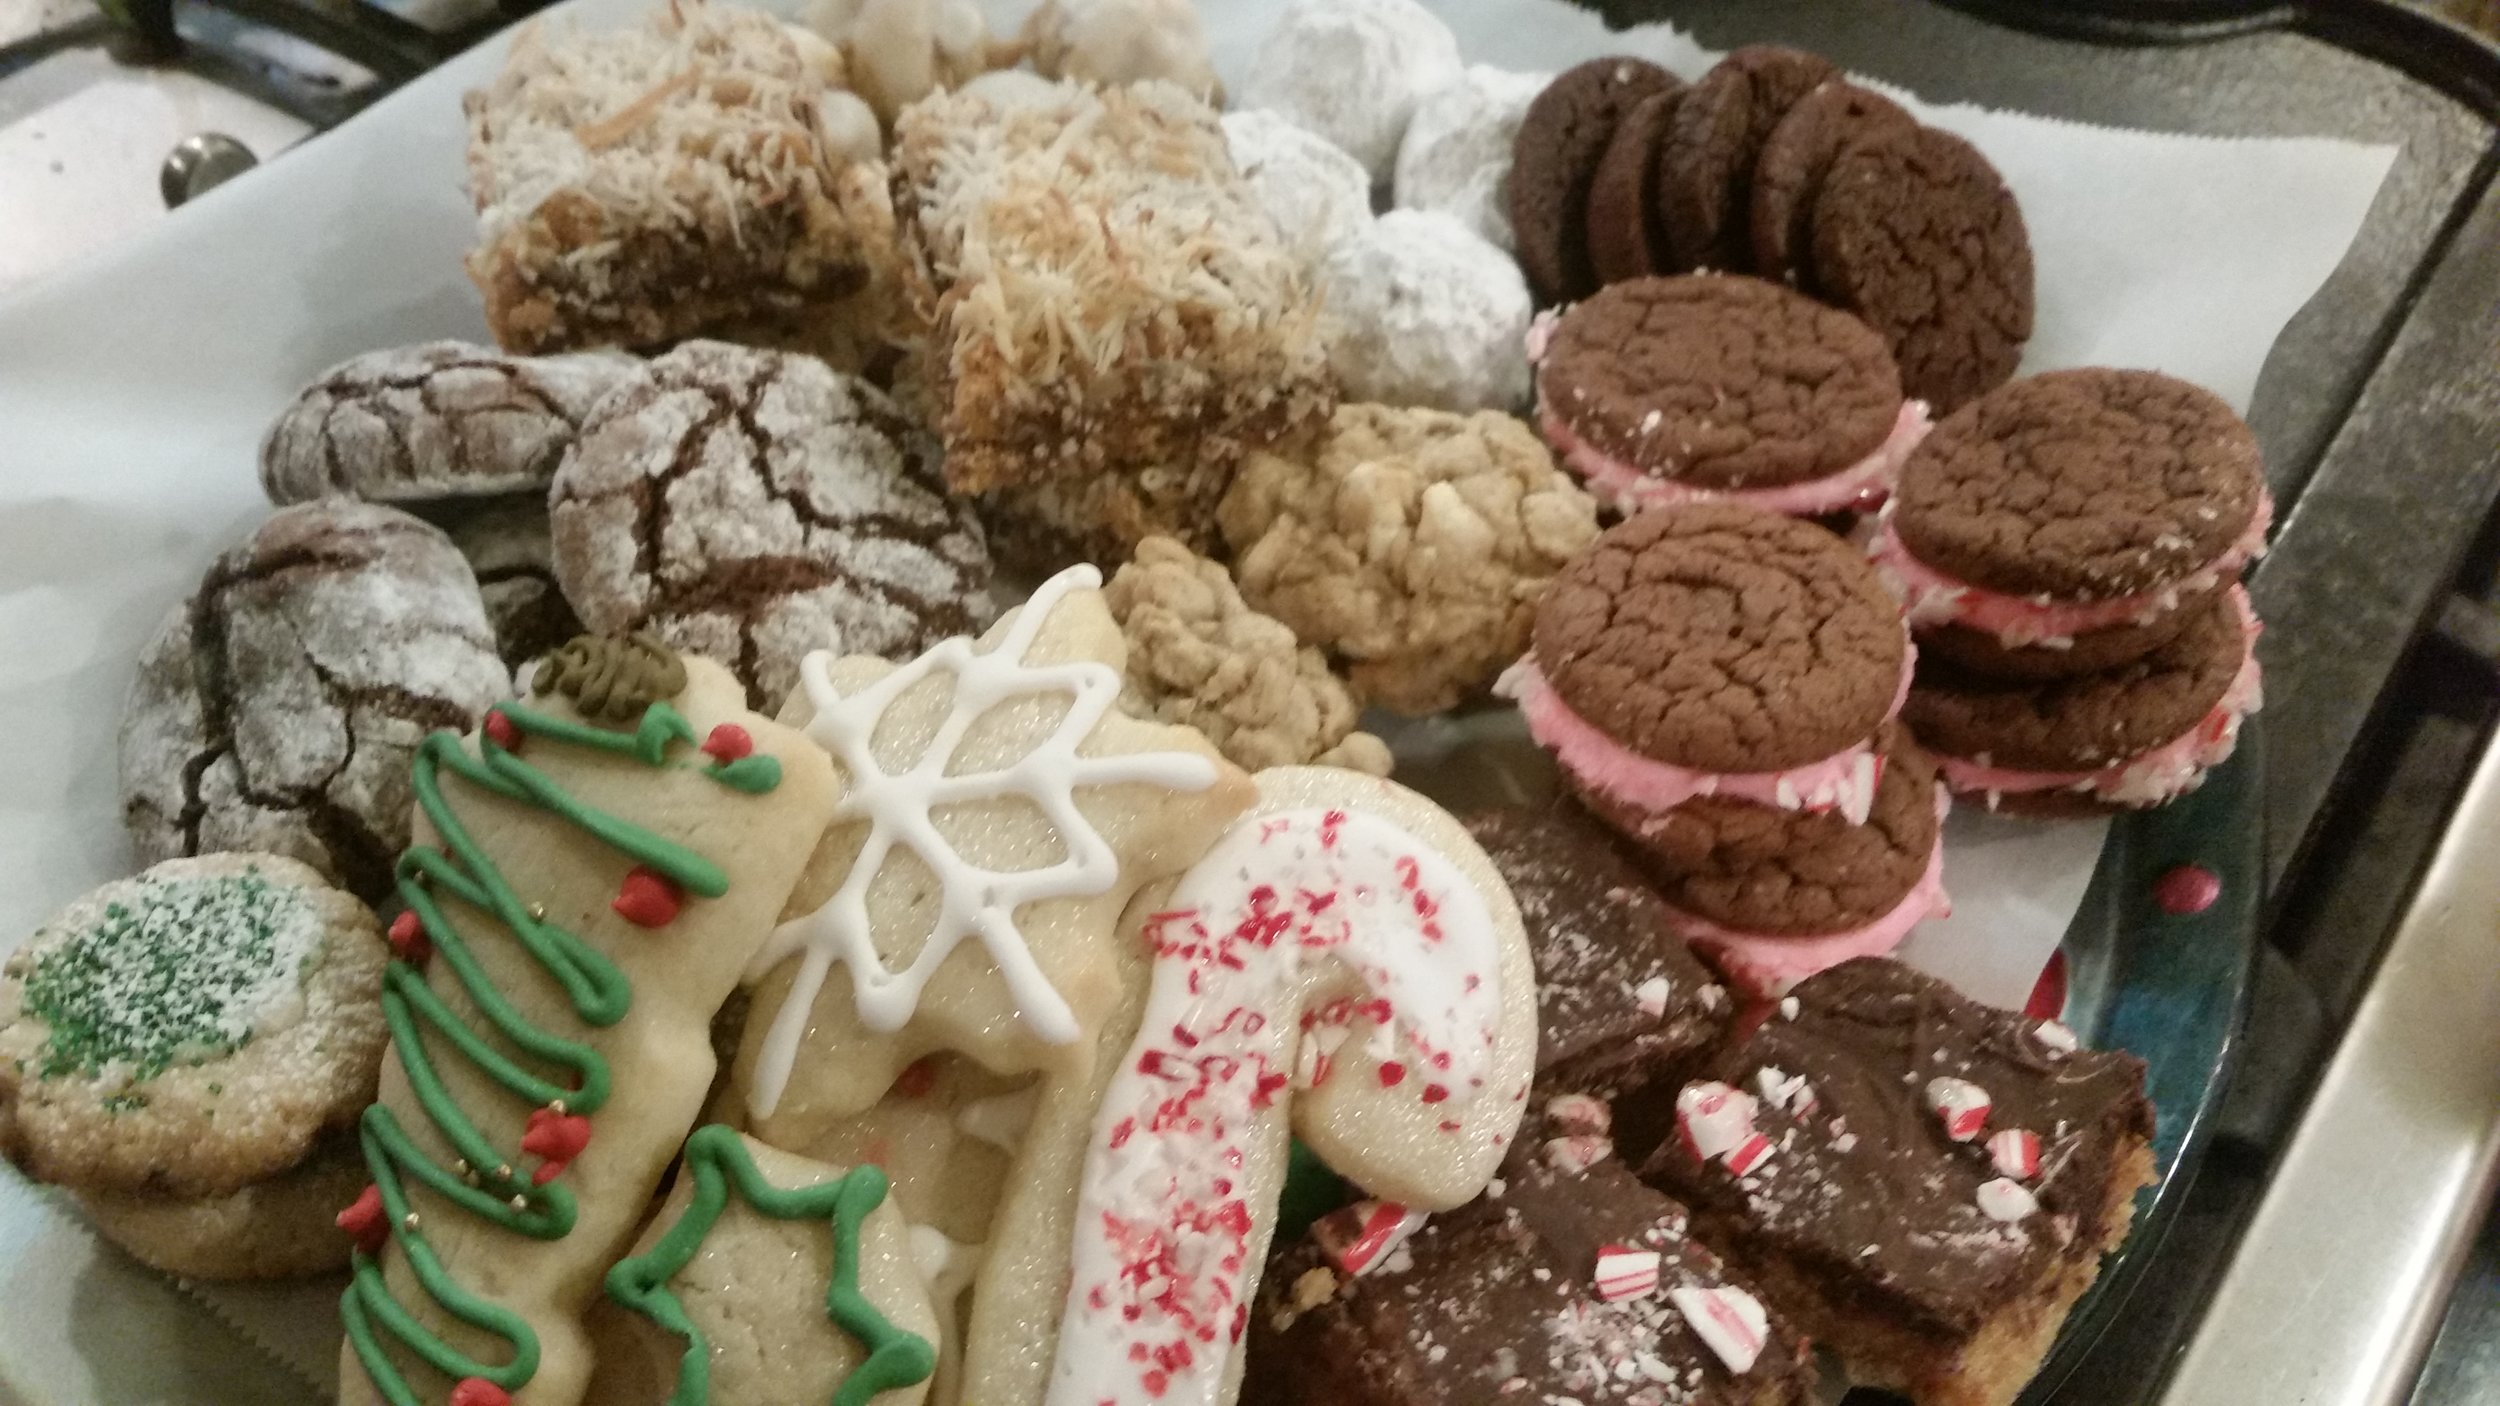 This year's book club cookie exchange haul